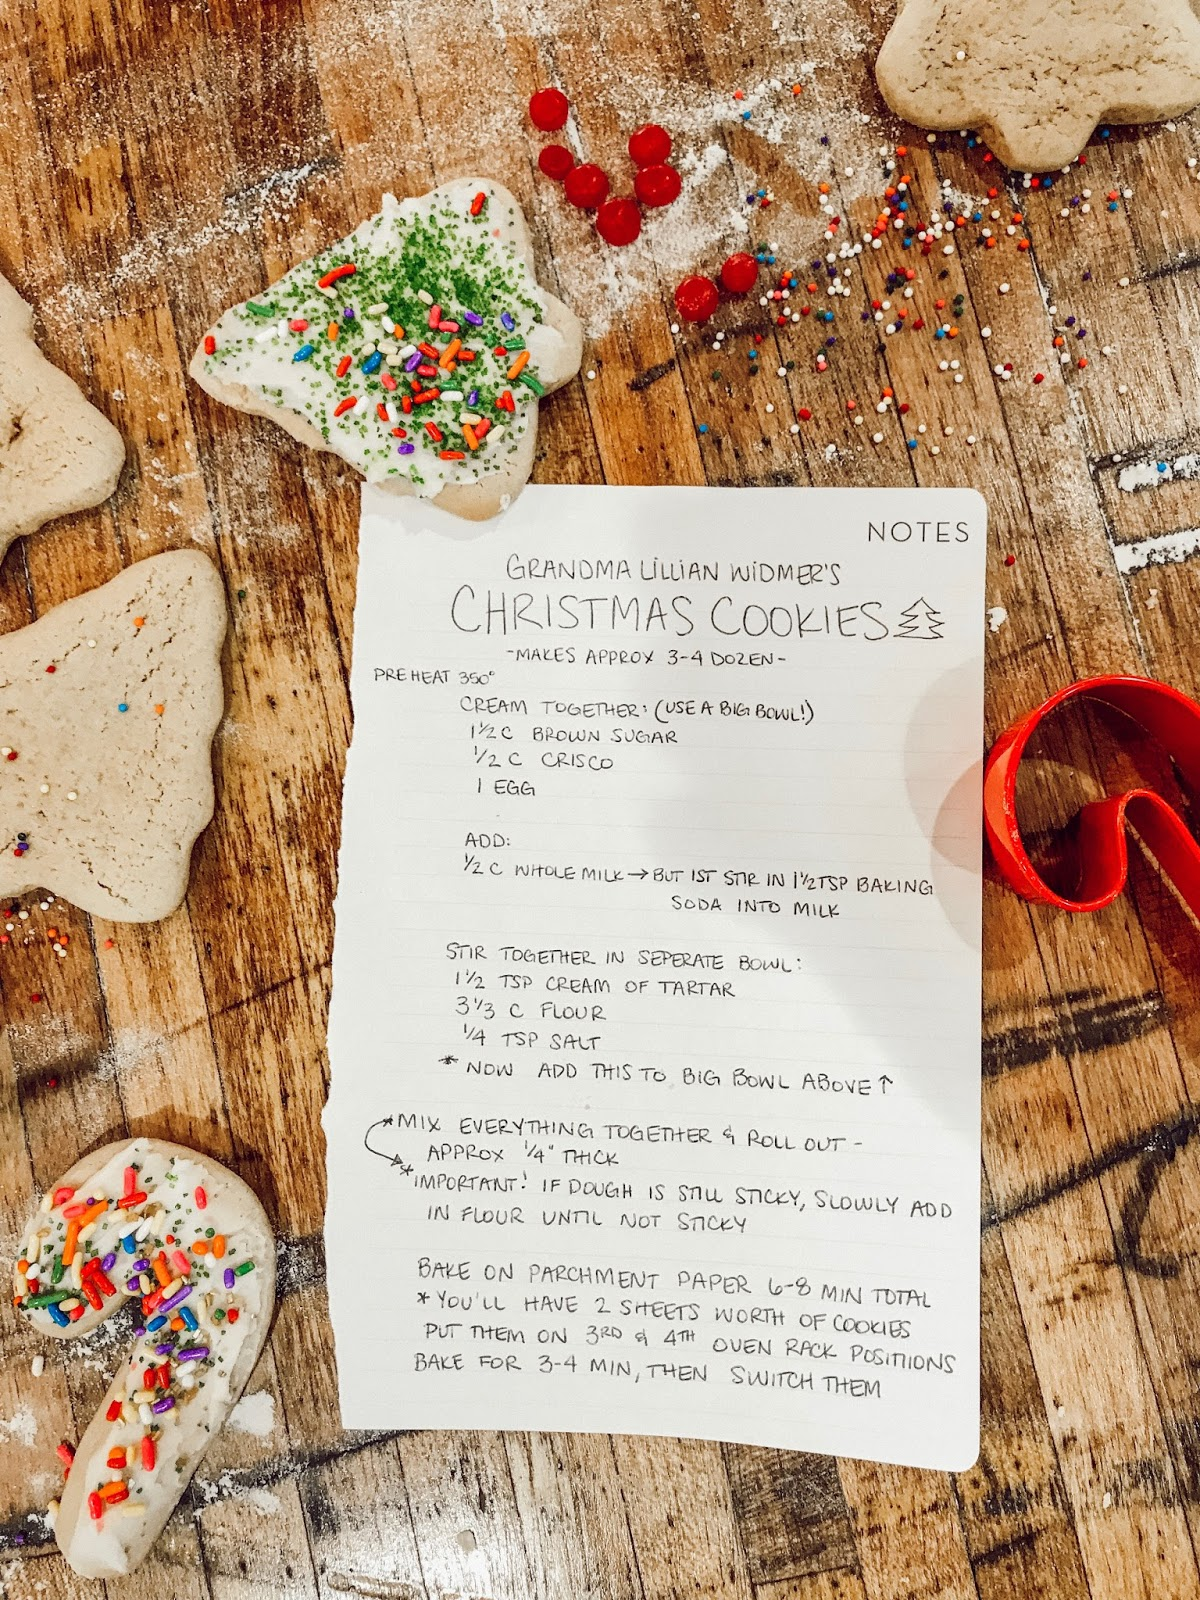 Hello June Bug Our Family Christmas Cookie Recipe